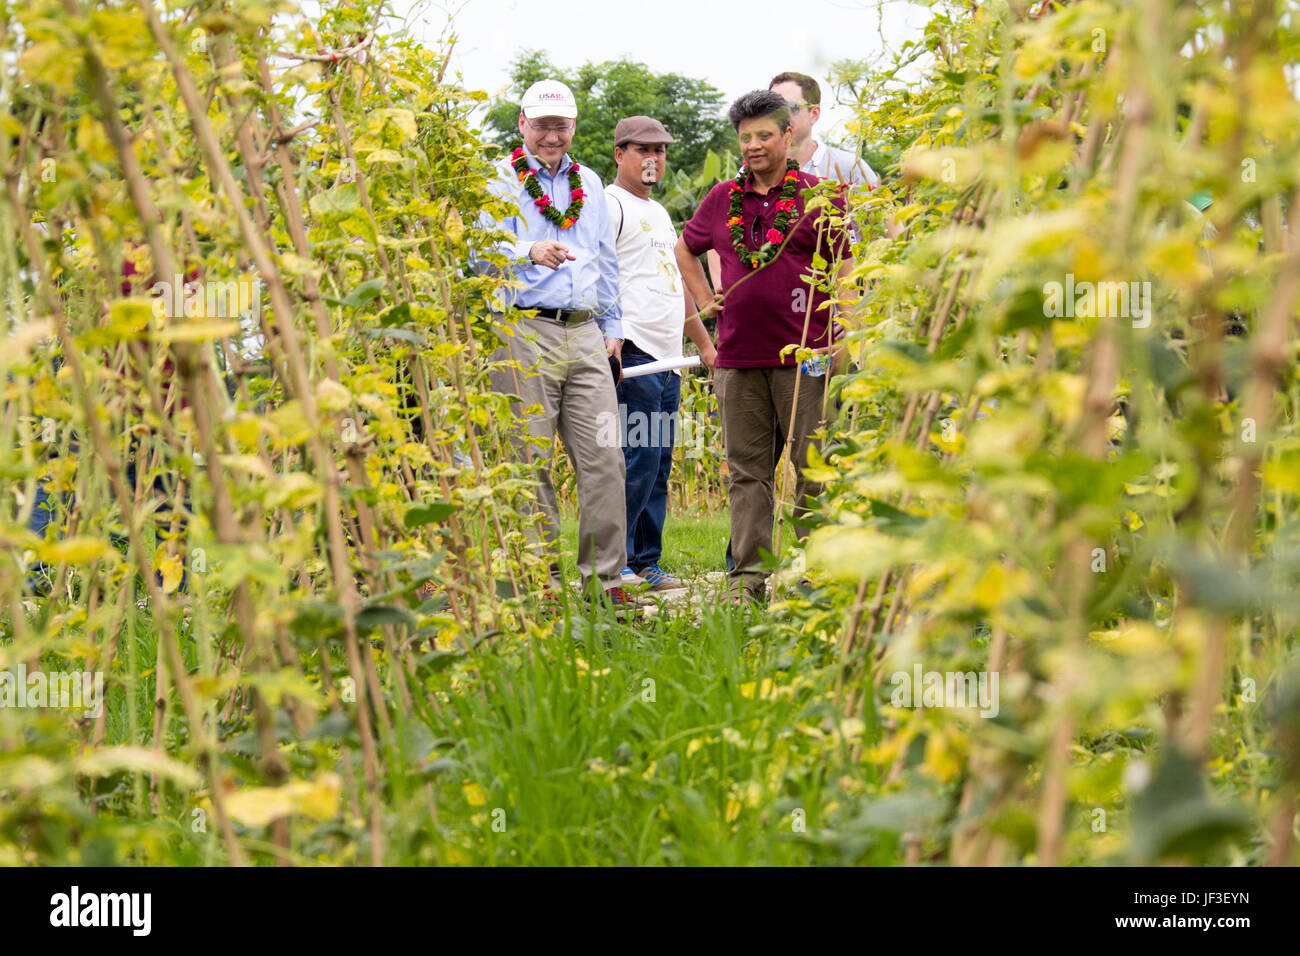 USAID Mission Director Peter Malnak asking questions about USAID funded organic peas in the Terai Region of Nepal - Stock Image